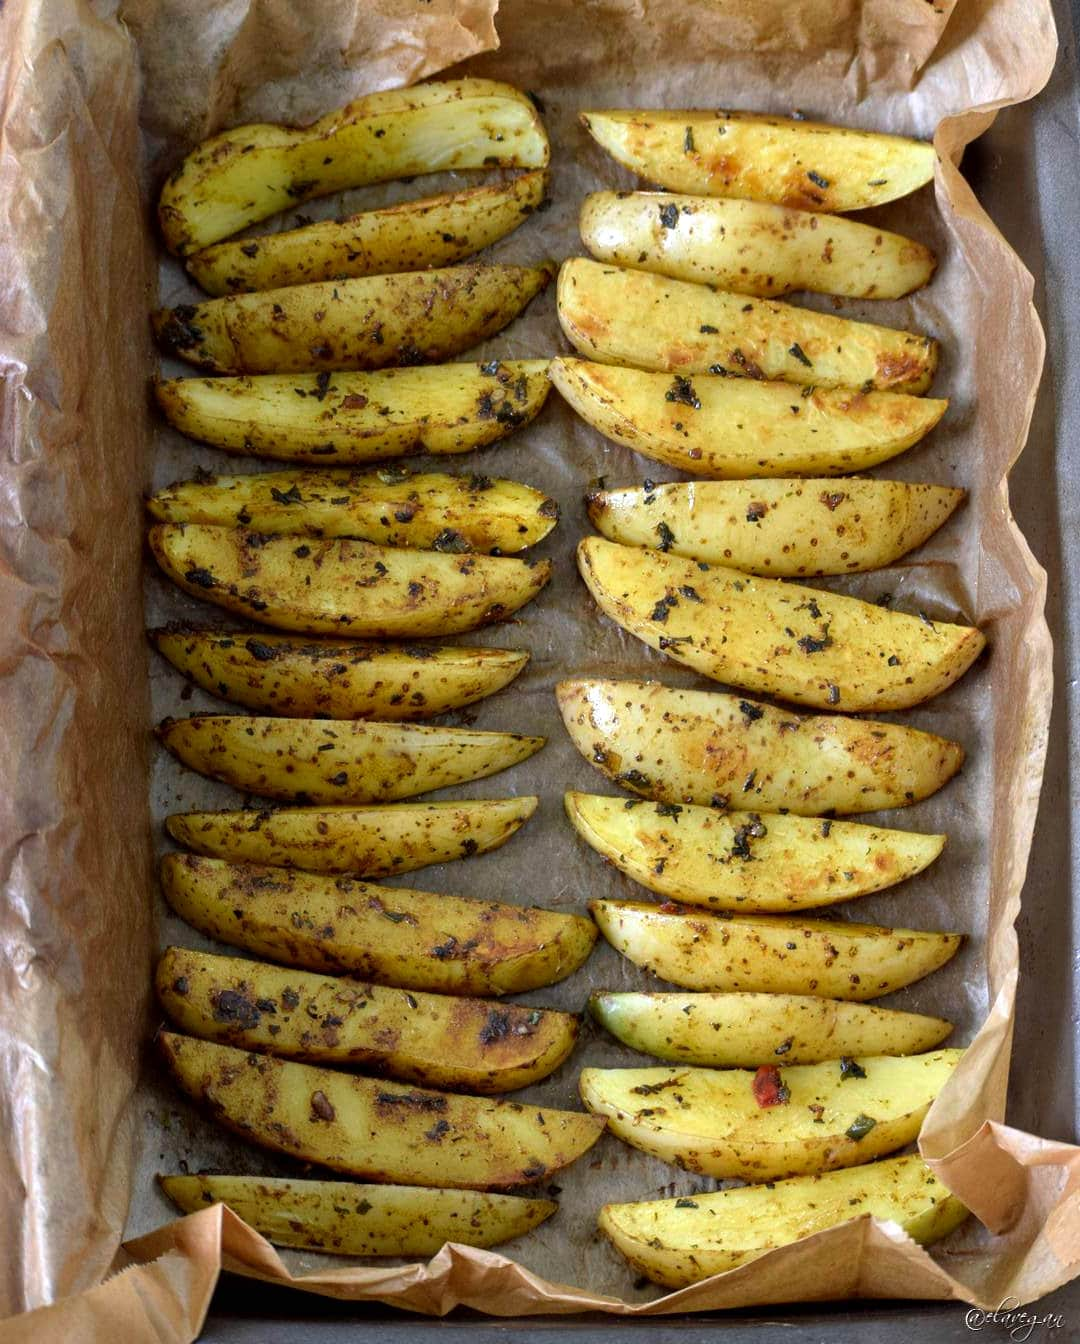 oven baked potato wedges recipe - on baking sheet - low in fat and not deep fried